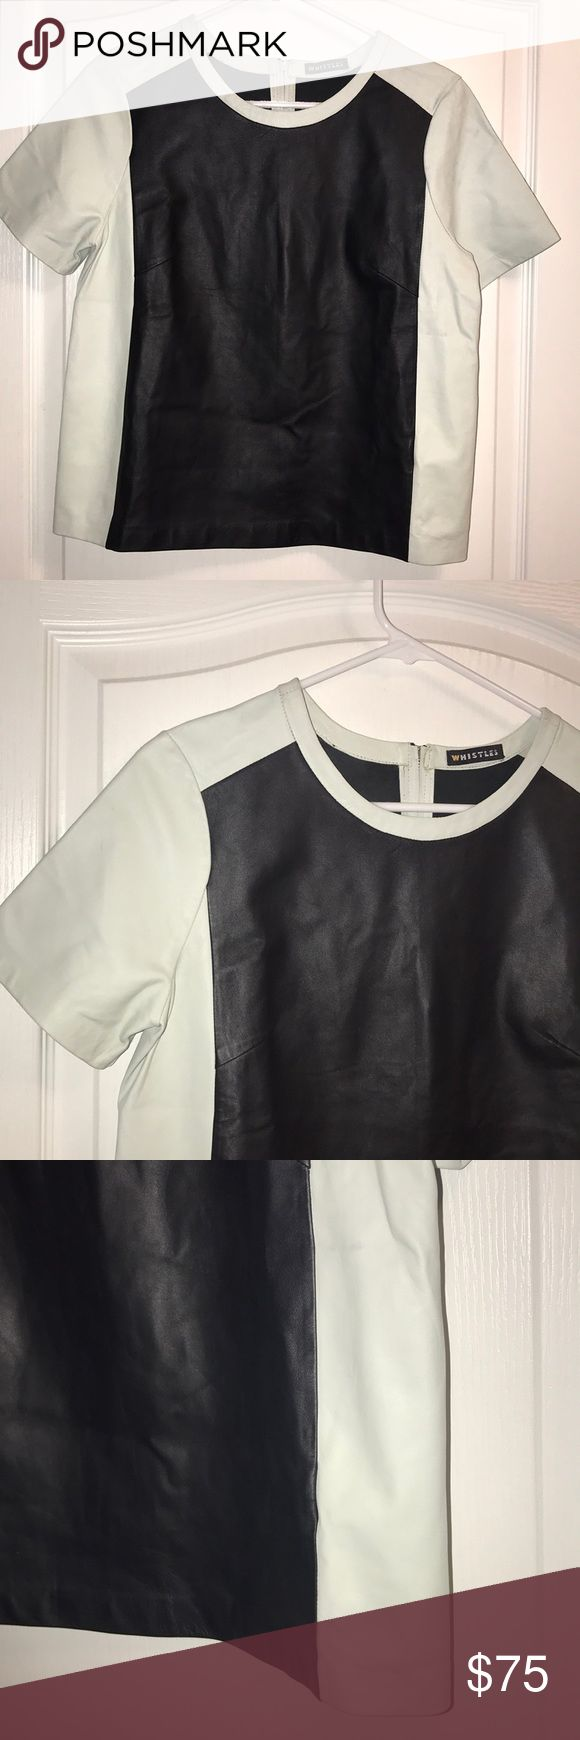 New Whistles Leather Color Block Short Sleeve Top New $495 Black Shopbop Whistles Leather Color Block Short Sleeve Top US 6 UK 10   SOLD-OUT EVERYWHERE!!   High quality extremely soft leather - goes with everything, feels luxurious on and can be dressed up or down.  US Size-6  UK 10 Whistles Tops